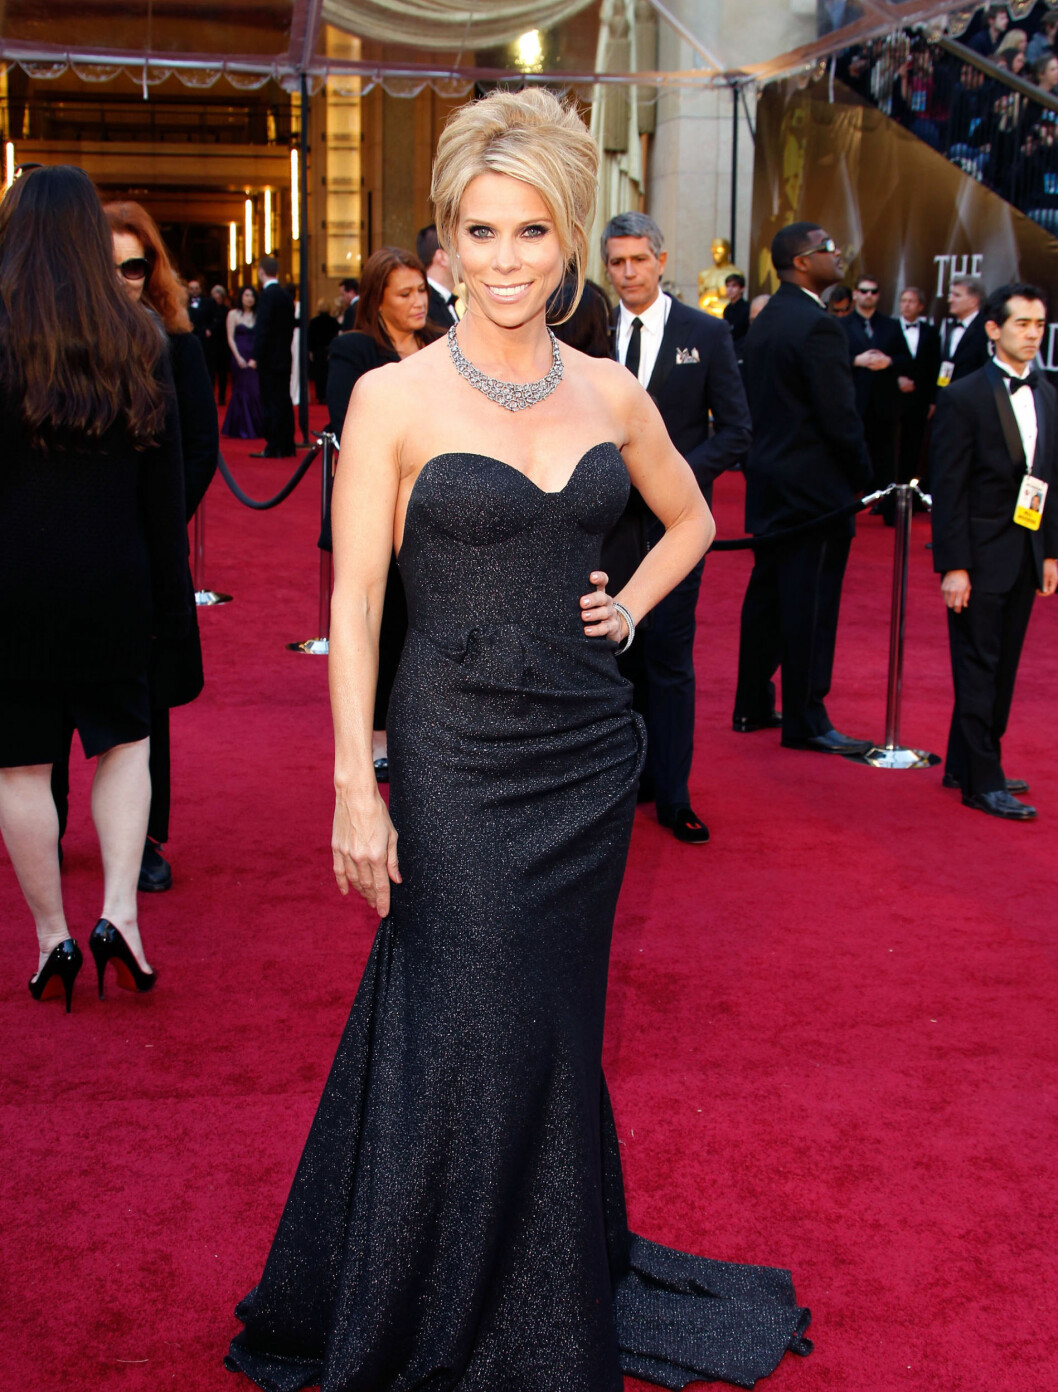 CHERYL HINES: «Curb Your Enthusiasm»-stjernen Cheryl Hines kledd i svart. Foto: All Over Press